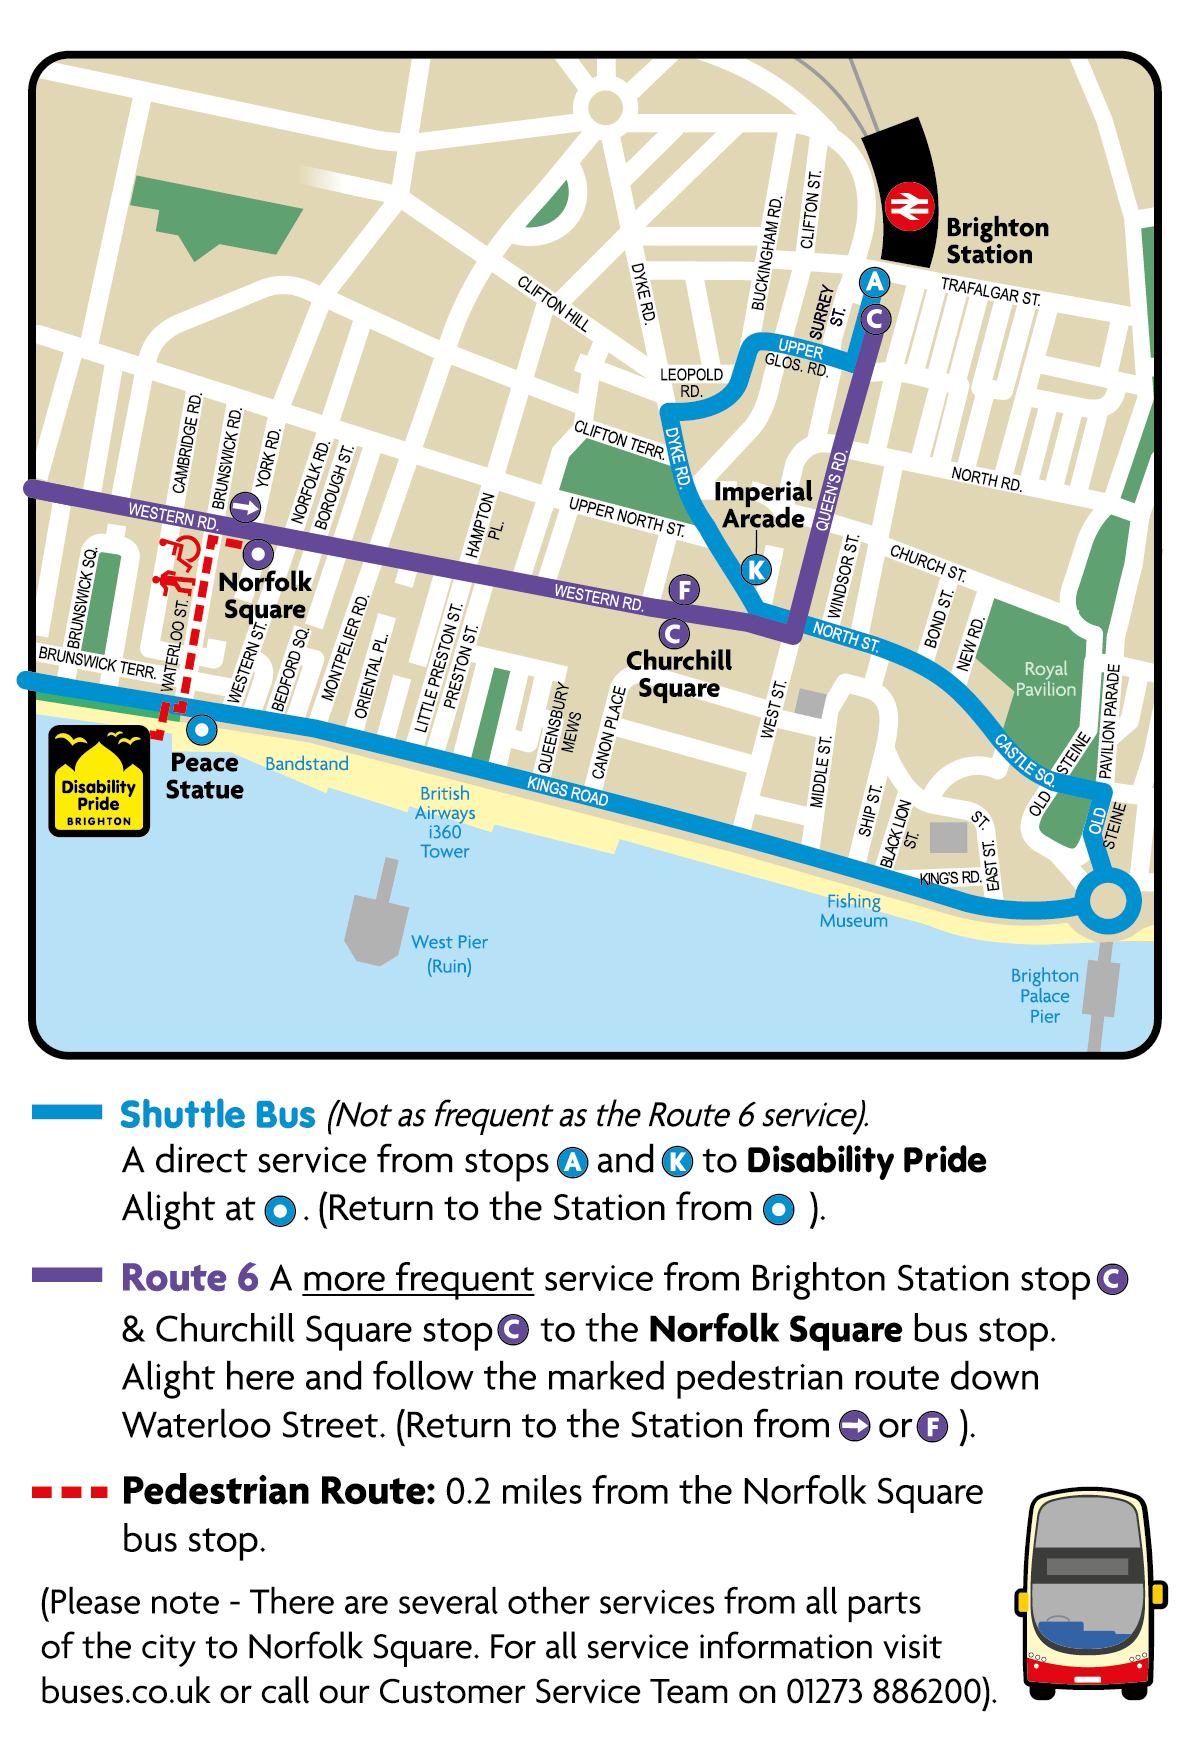 Map showing shuttle service, 6 service, pedestrian route and Norfolk Square for all services operating via Western Road.